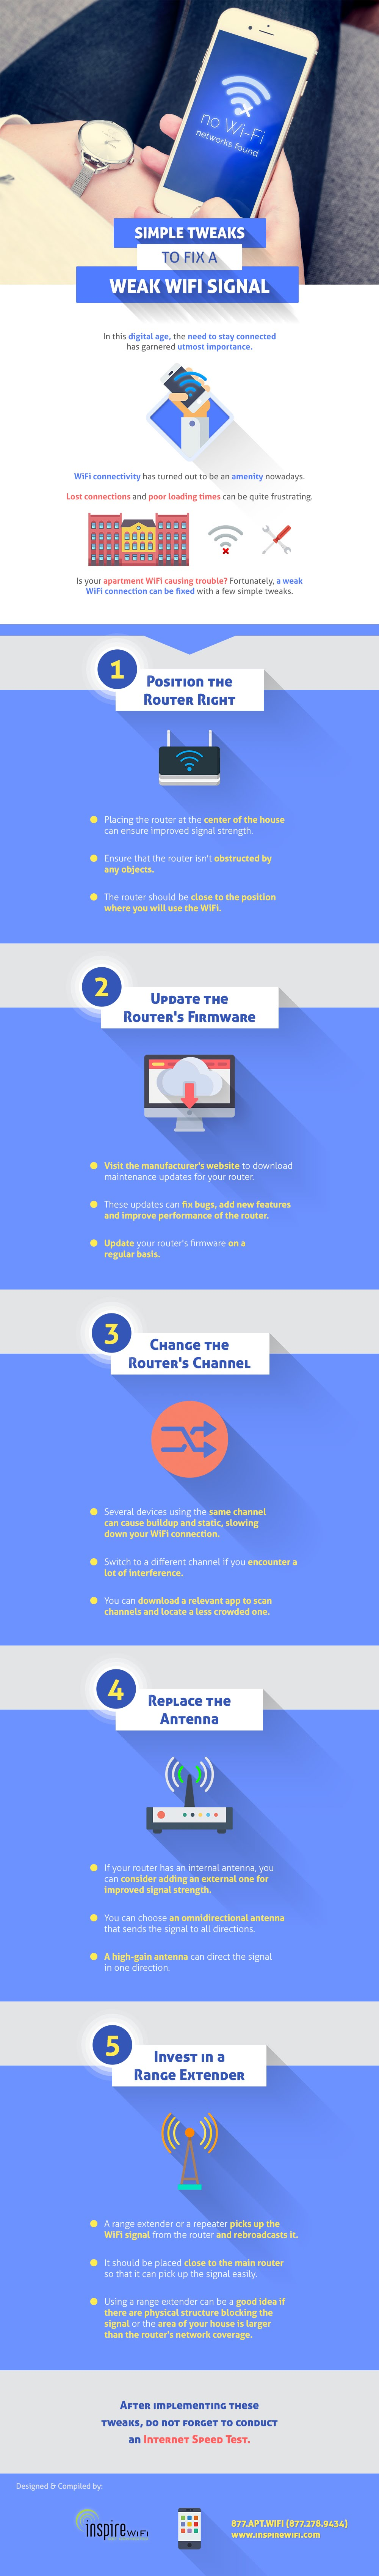 Simple Tweaks To Fix A Weak WiFi Signal - #infographic